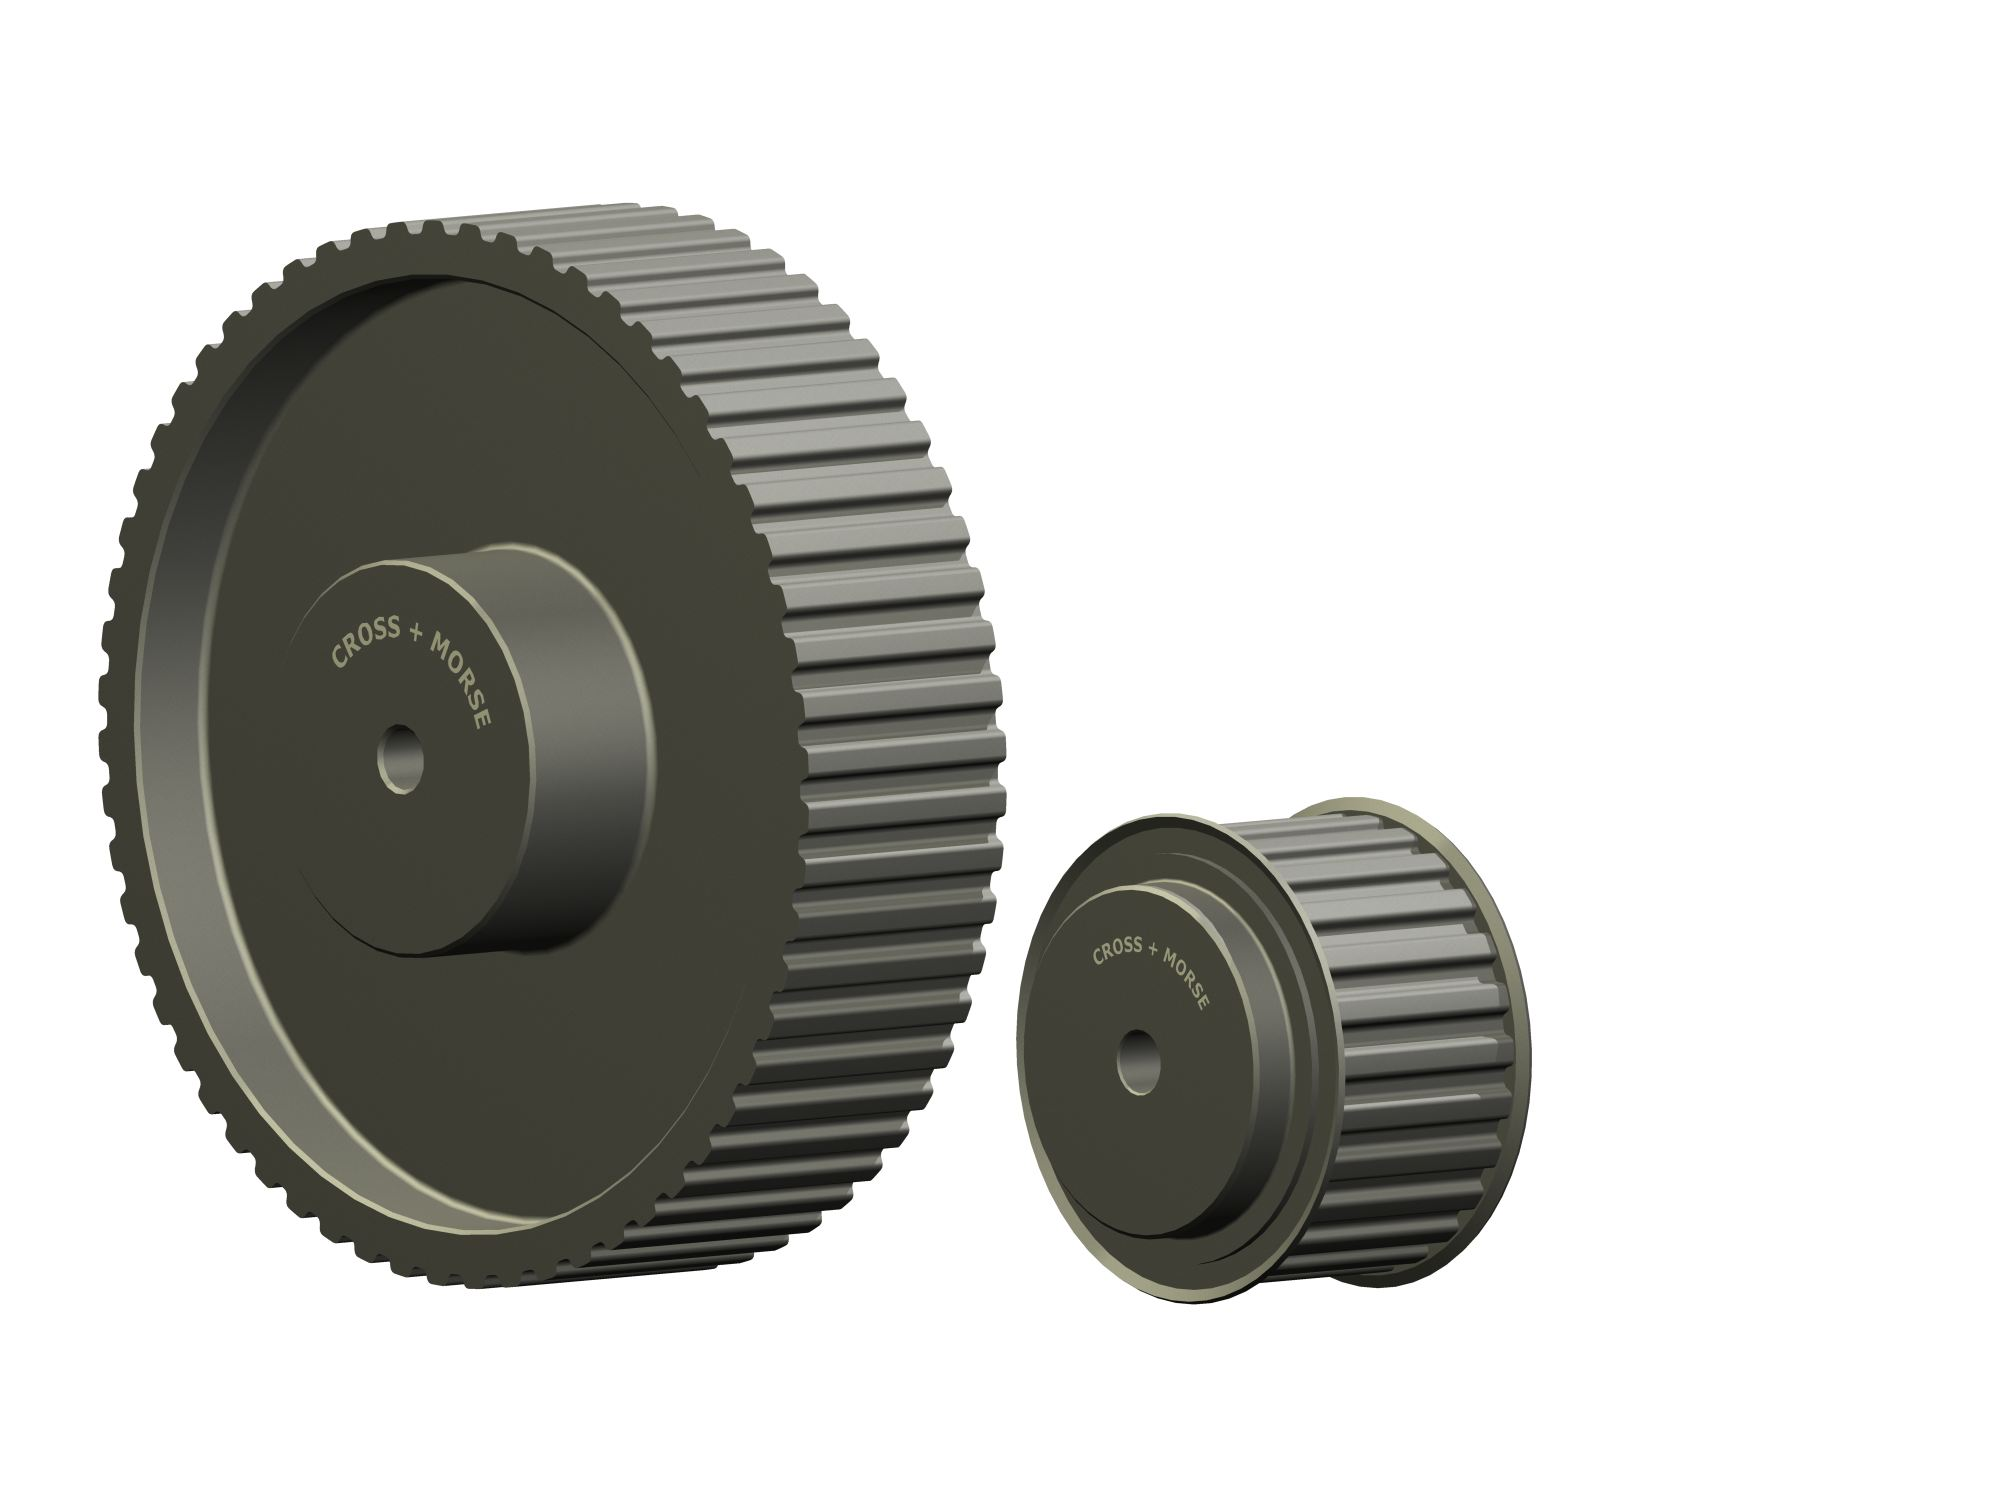 Timing Pulleys And Belts : Products timing belt pulley manufacturer in